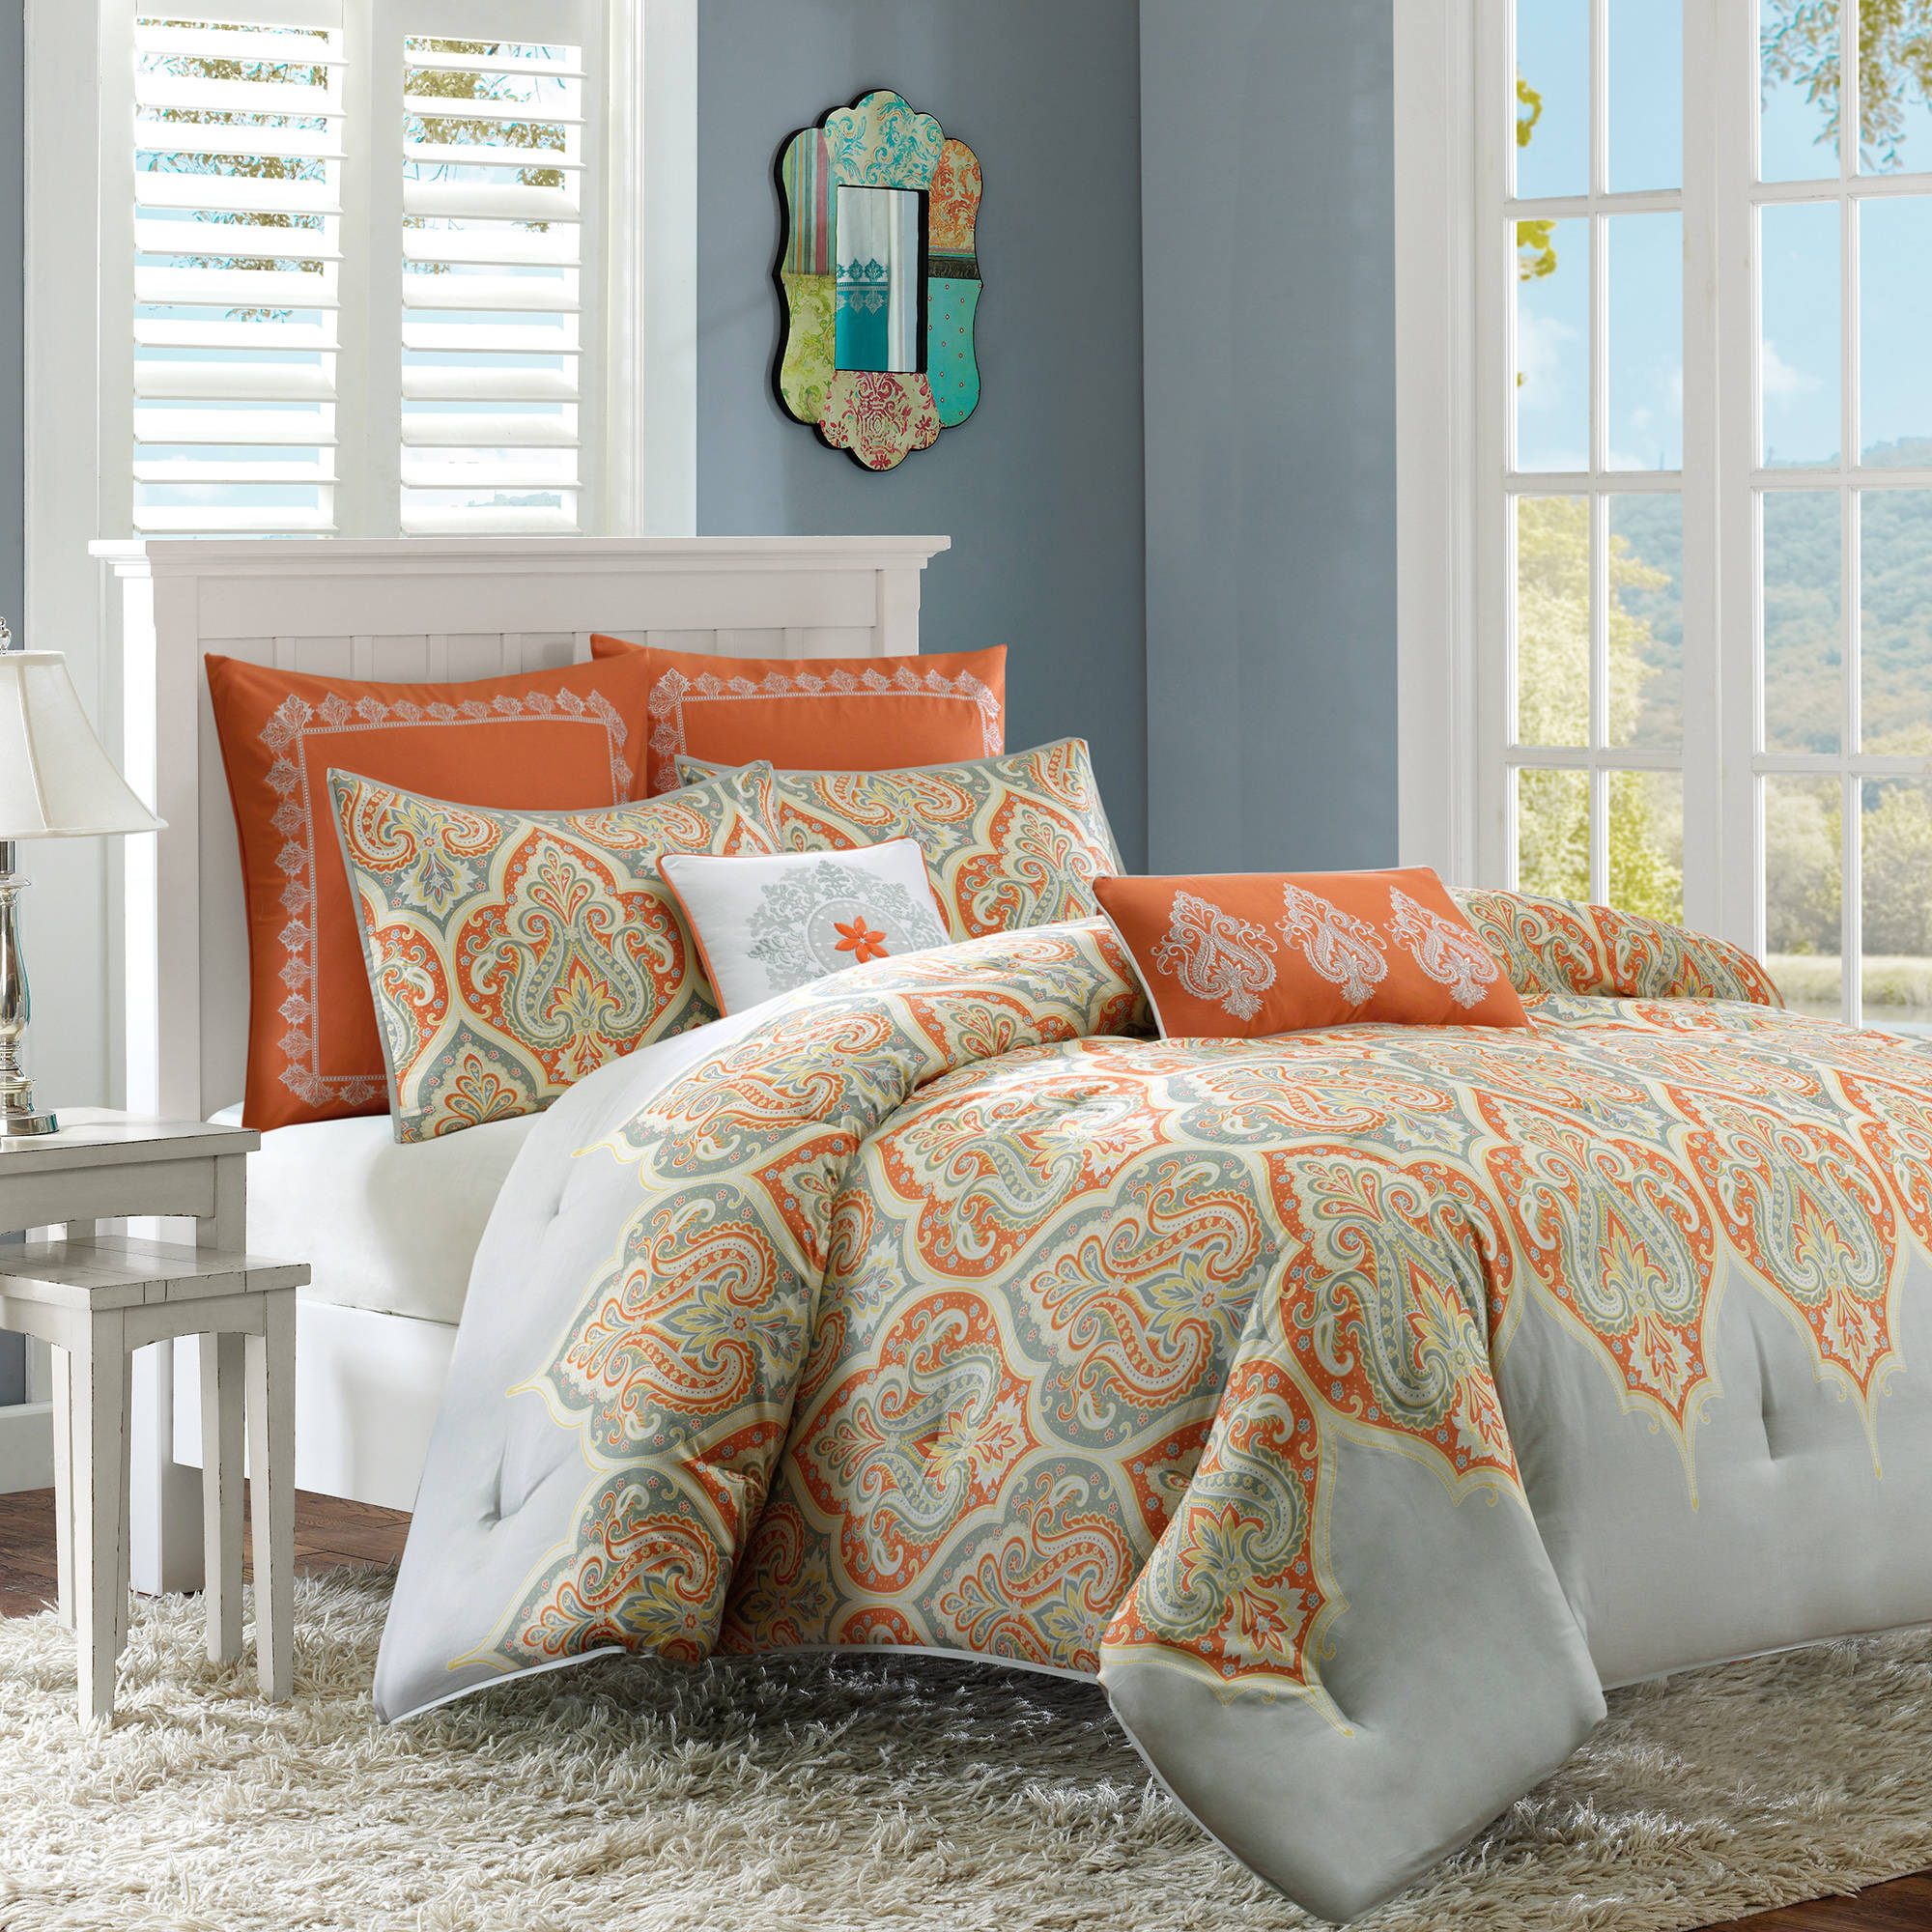 bess paisley orange cheap garden sets king blue white duvets comforter linen better print bedding homes all grey green cover homesfeed duvet sydney flower of lavender sheet queen set full and quilt covers magnificent bedroom picture circle size